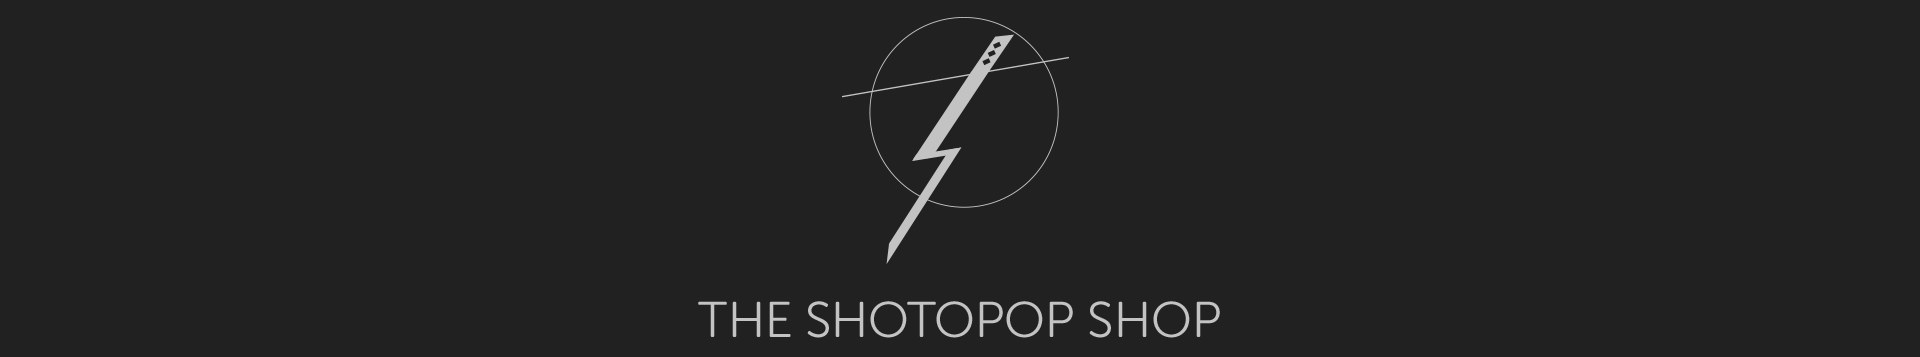 The Shotopop Shop